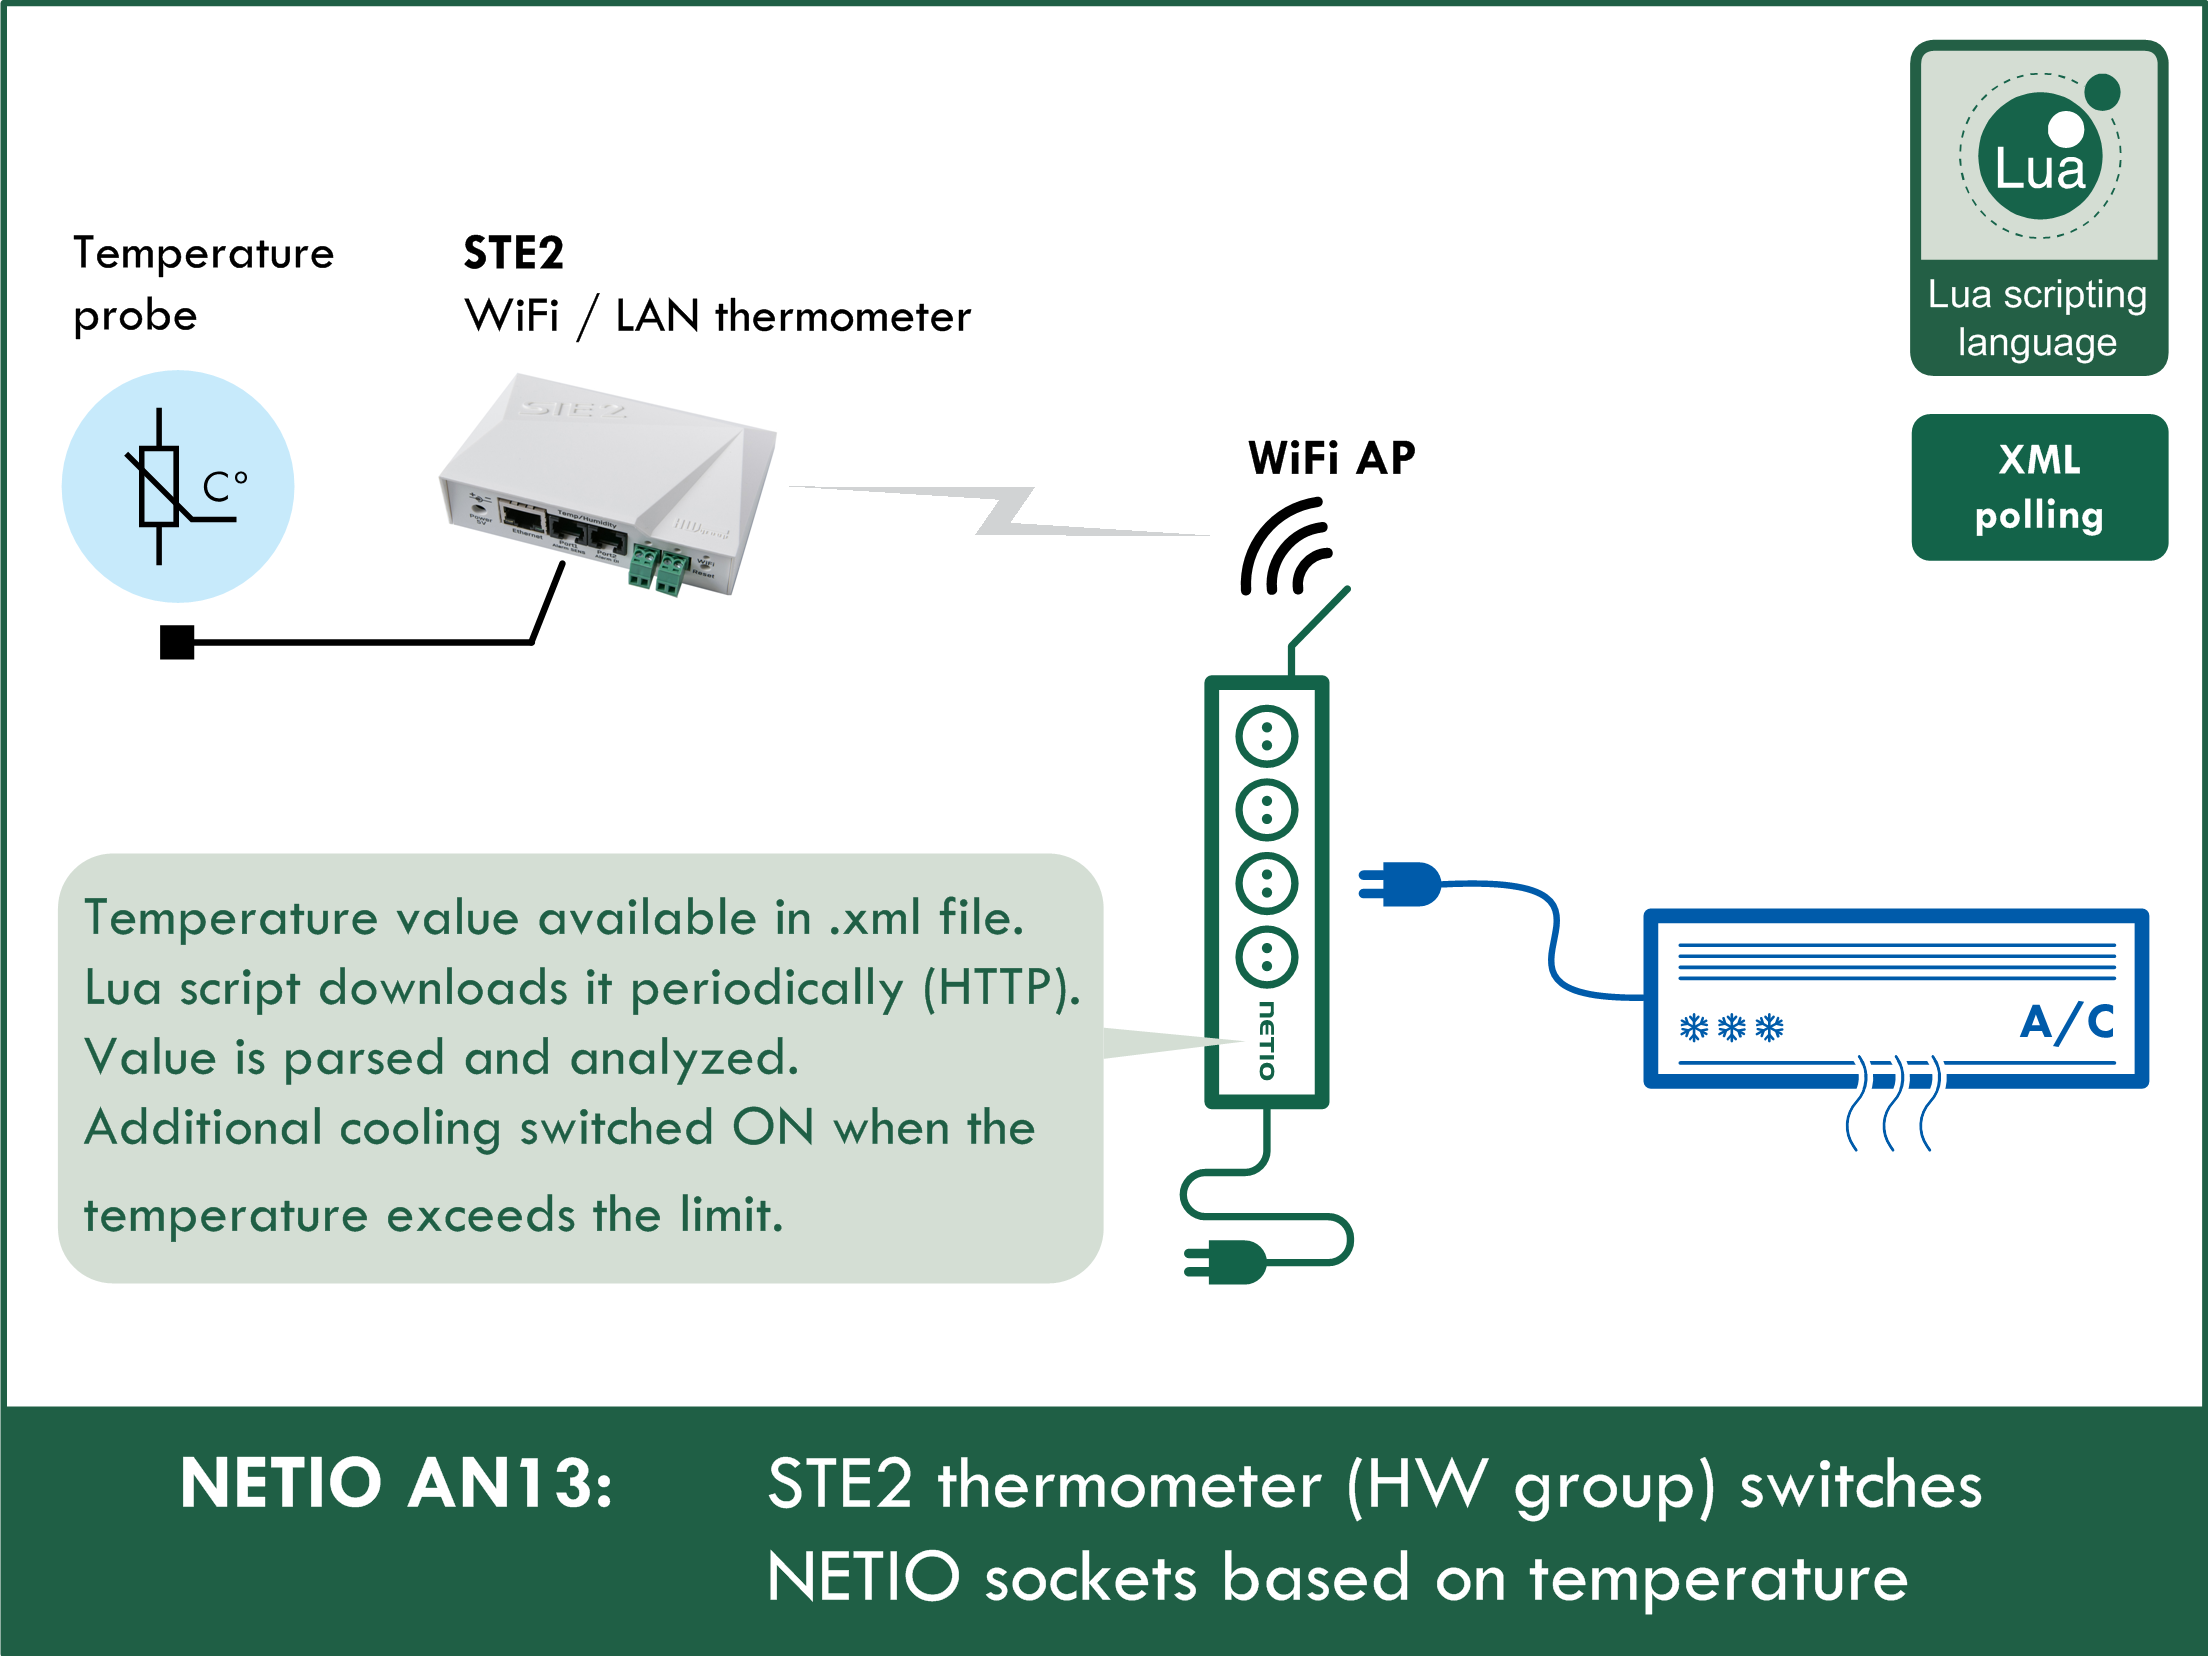 STE2 thermometer (HW group) switches NETIO sockets based on temperature